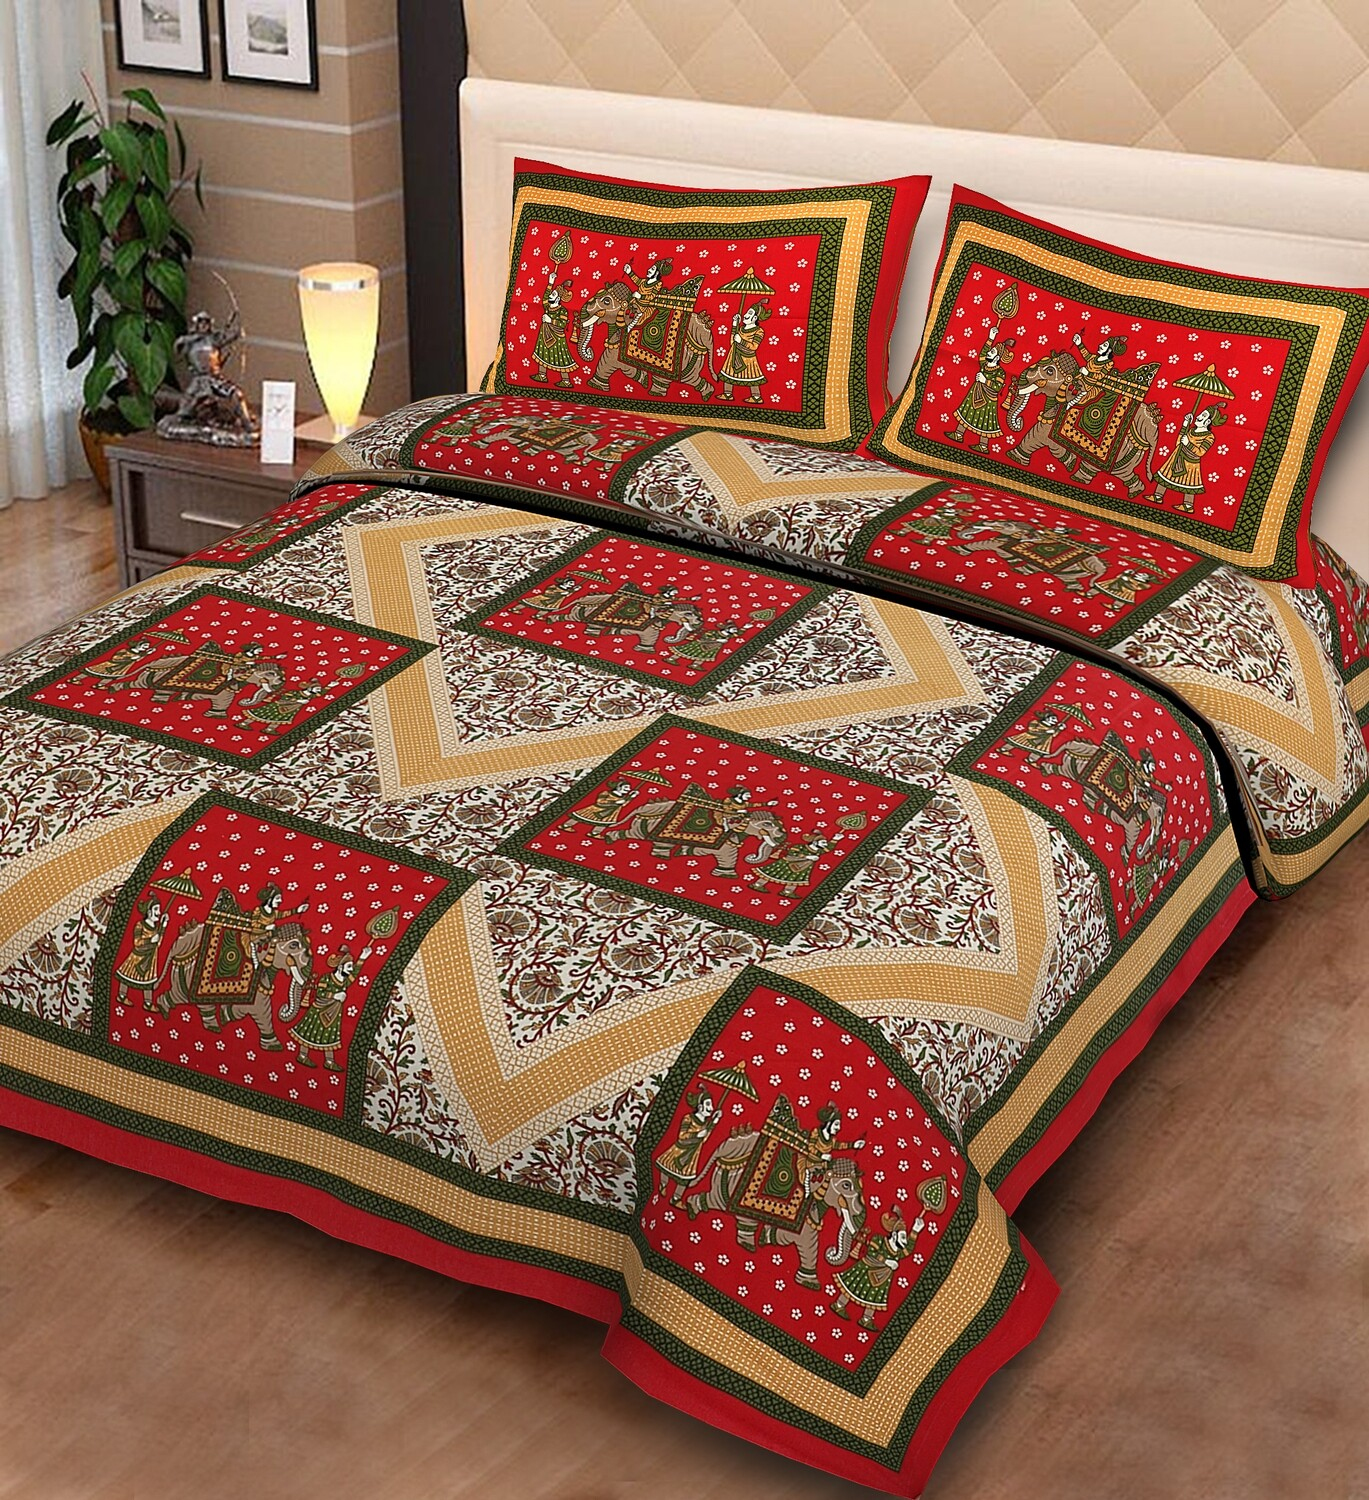 2022  Double Bedsheets With Two Pillow Cover